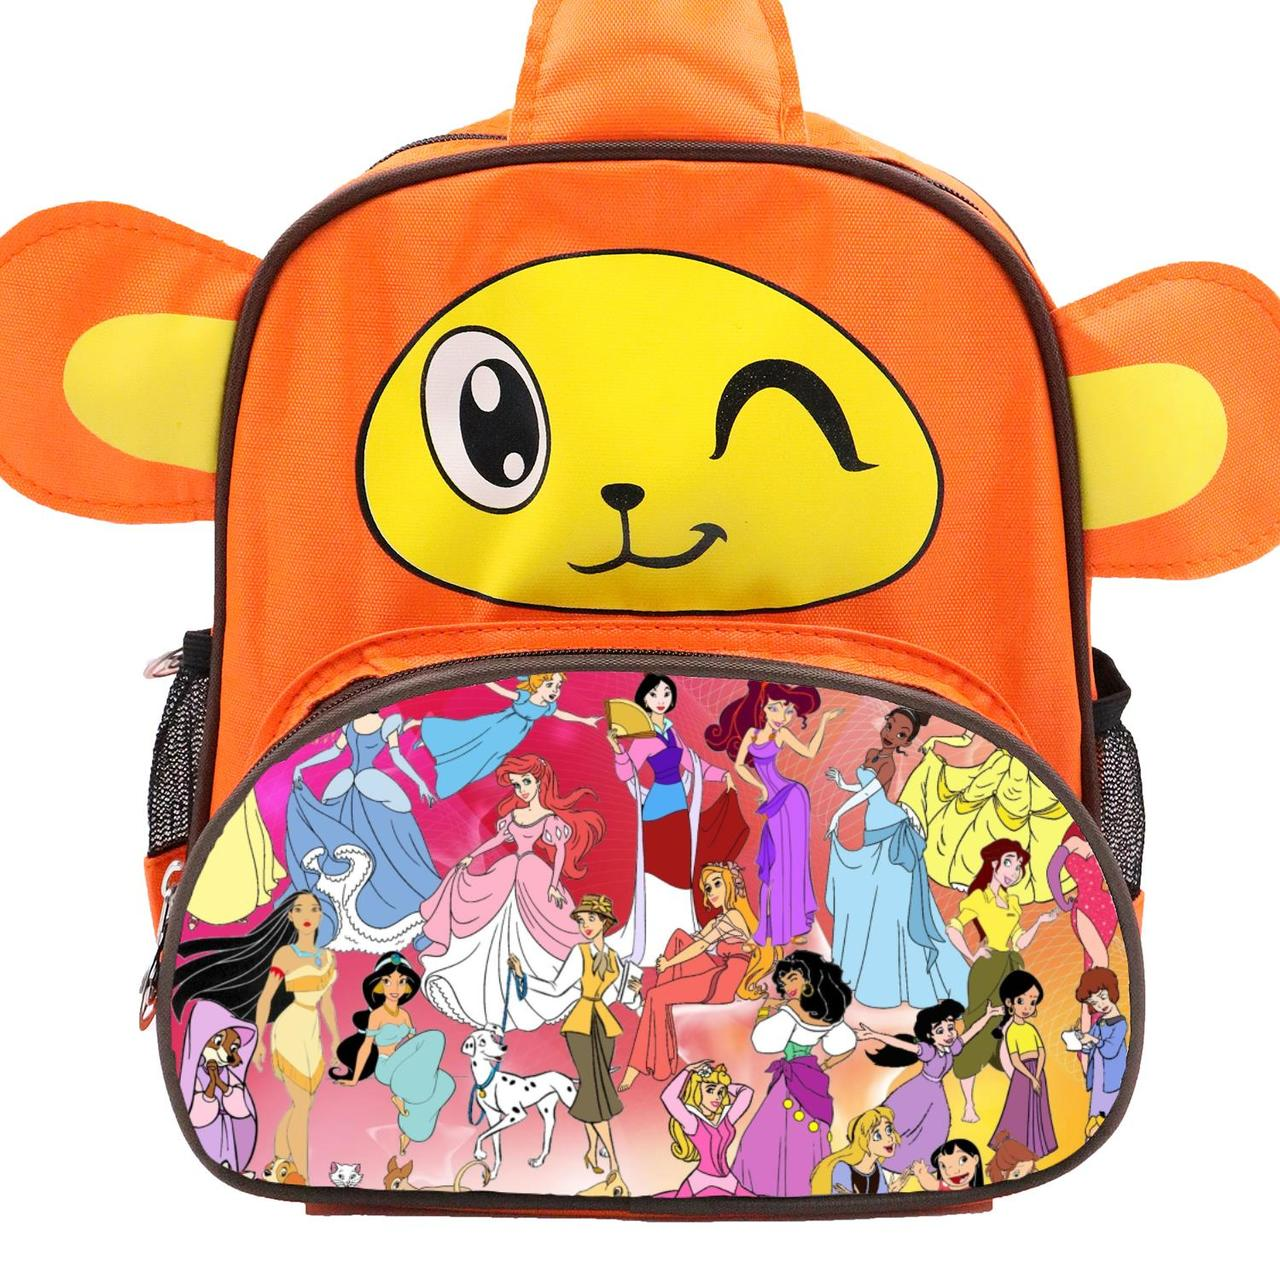 76413ea8ce Disney All Characters Cute Kids Backpack Children s School Bag for ...